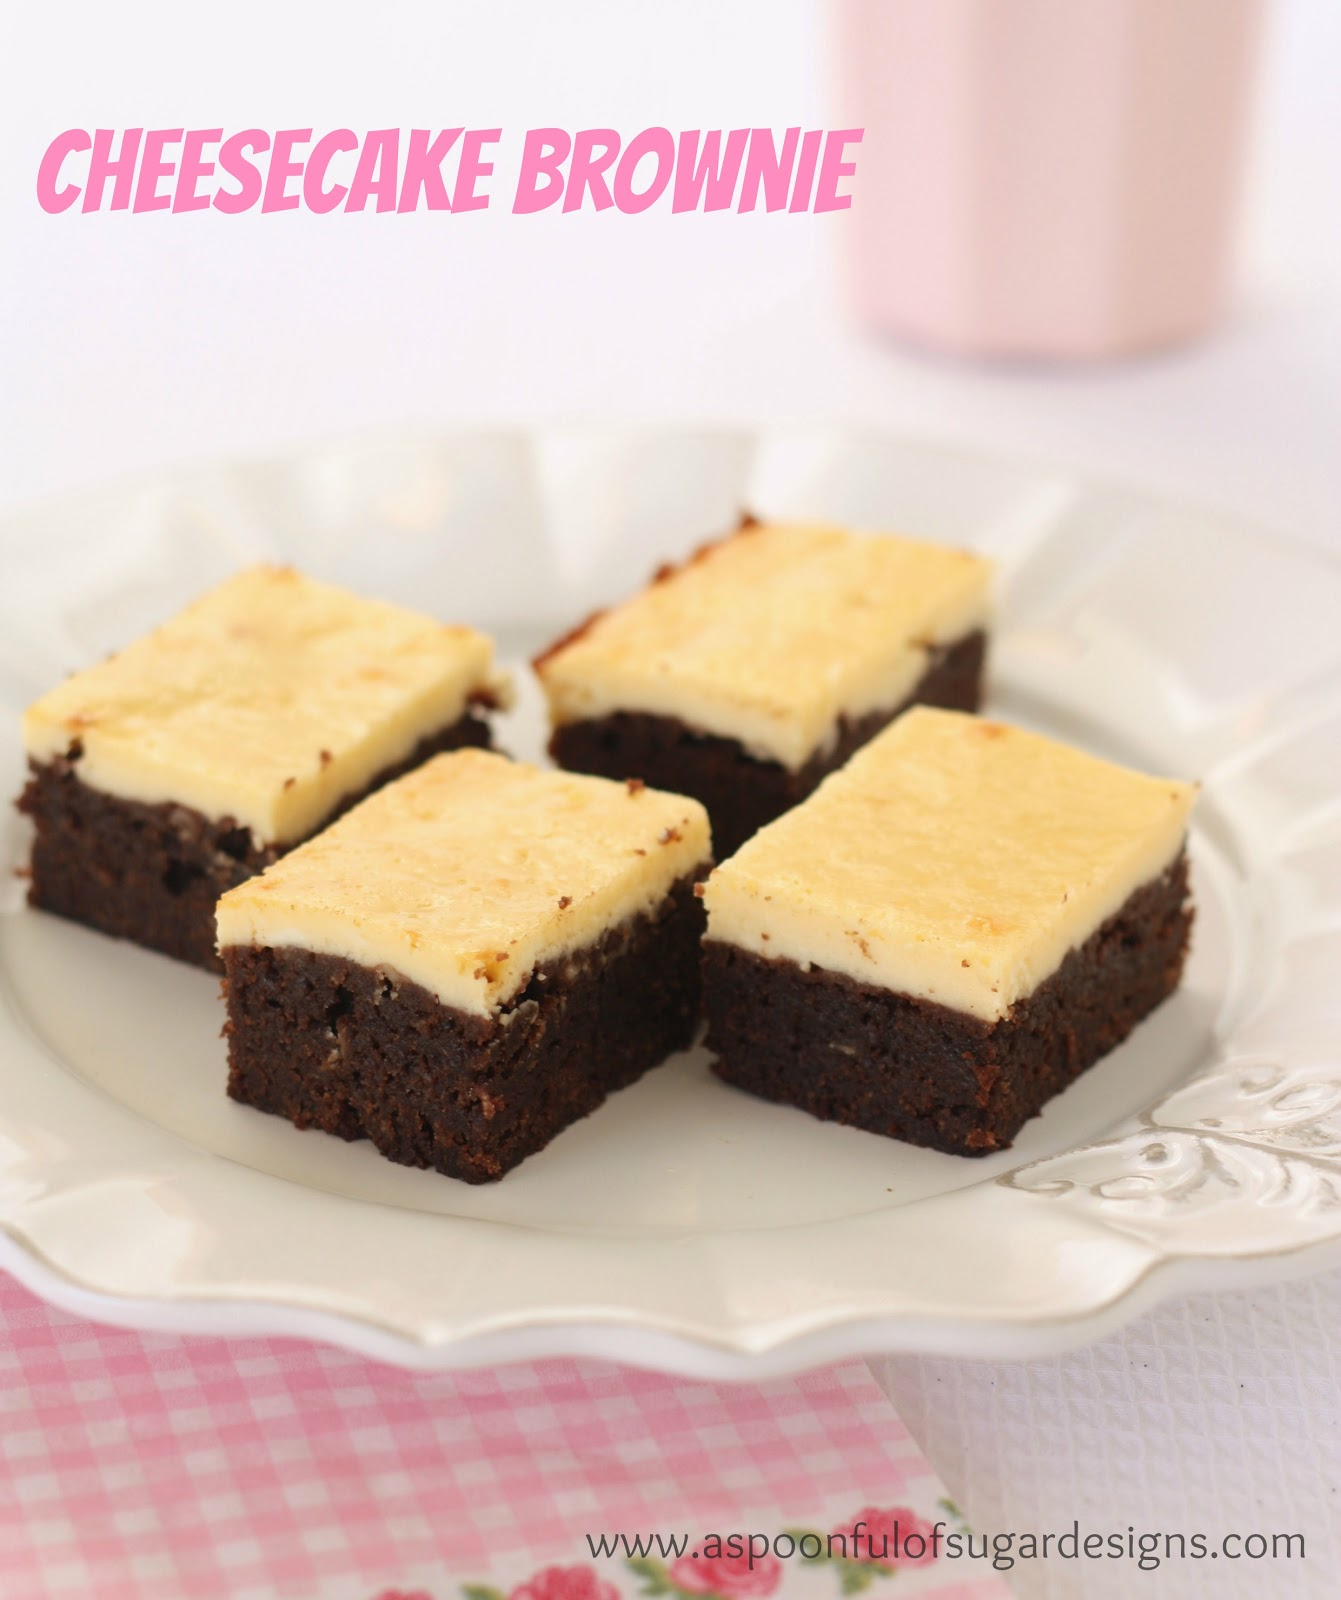 The Cheesecake Brownies have a rich chocolate brownie base with a ...